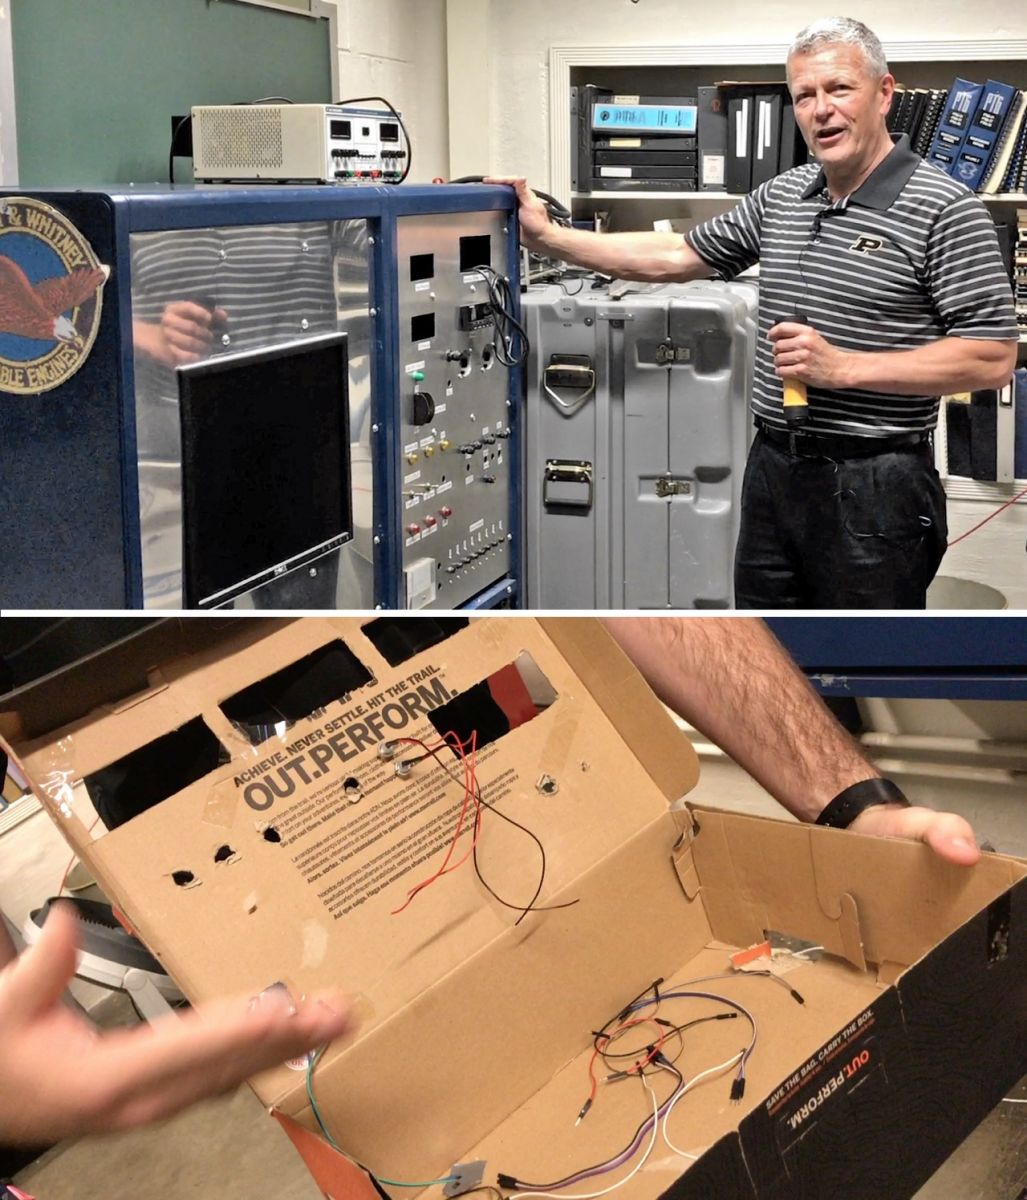 Top: Mike Davis points to racks of old equipment replaced by the microcontroller. Bottom: Gear inside the original shoebox prototype was relocated to a metal enclosure.